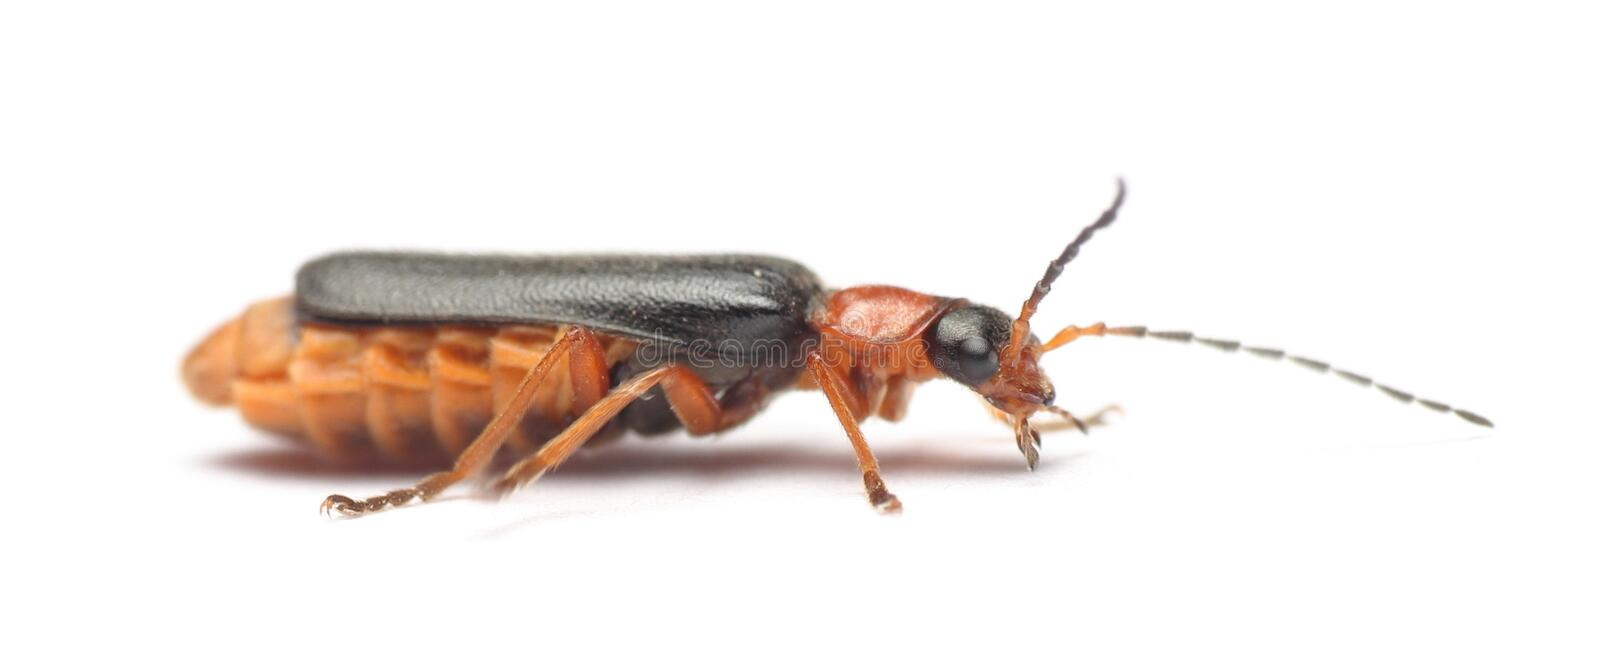 Soldier beetle cantharis pellucida royalty free stock photos